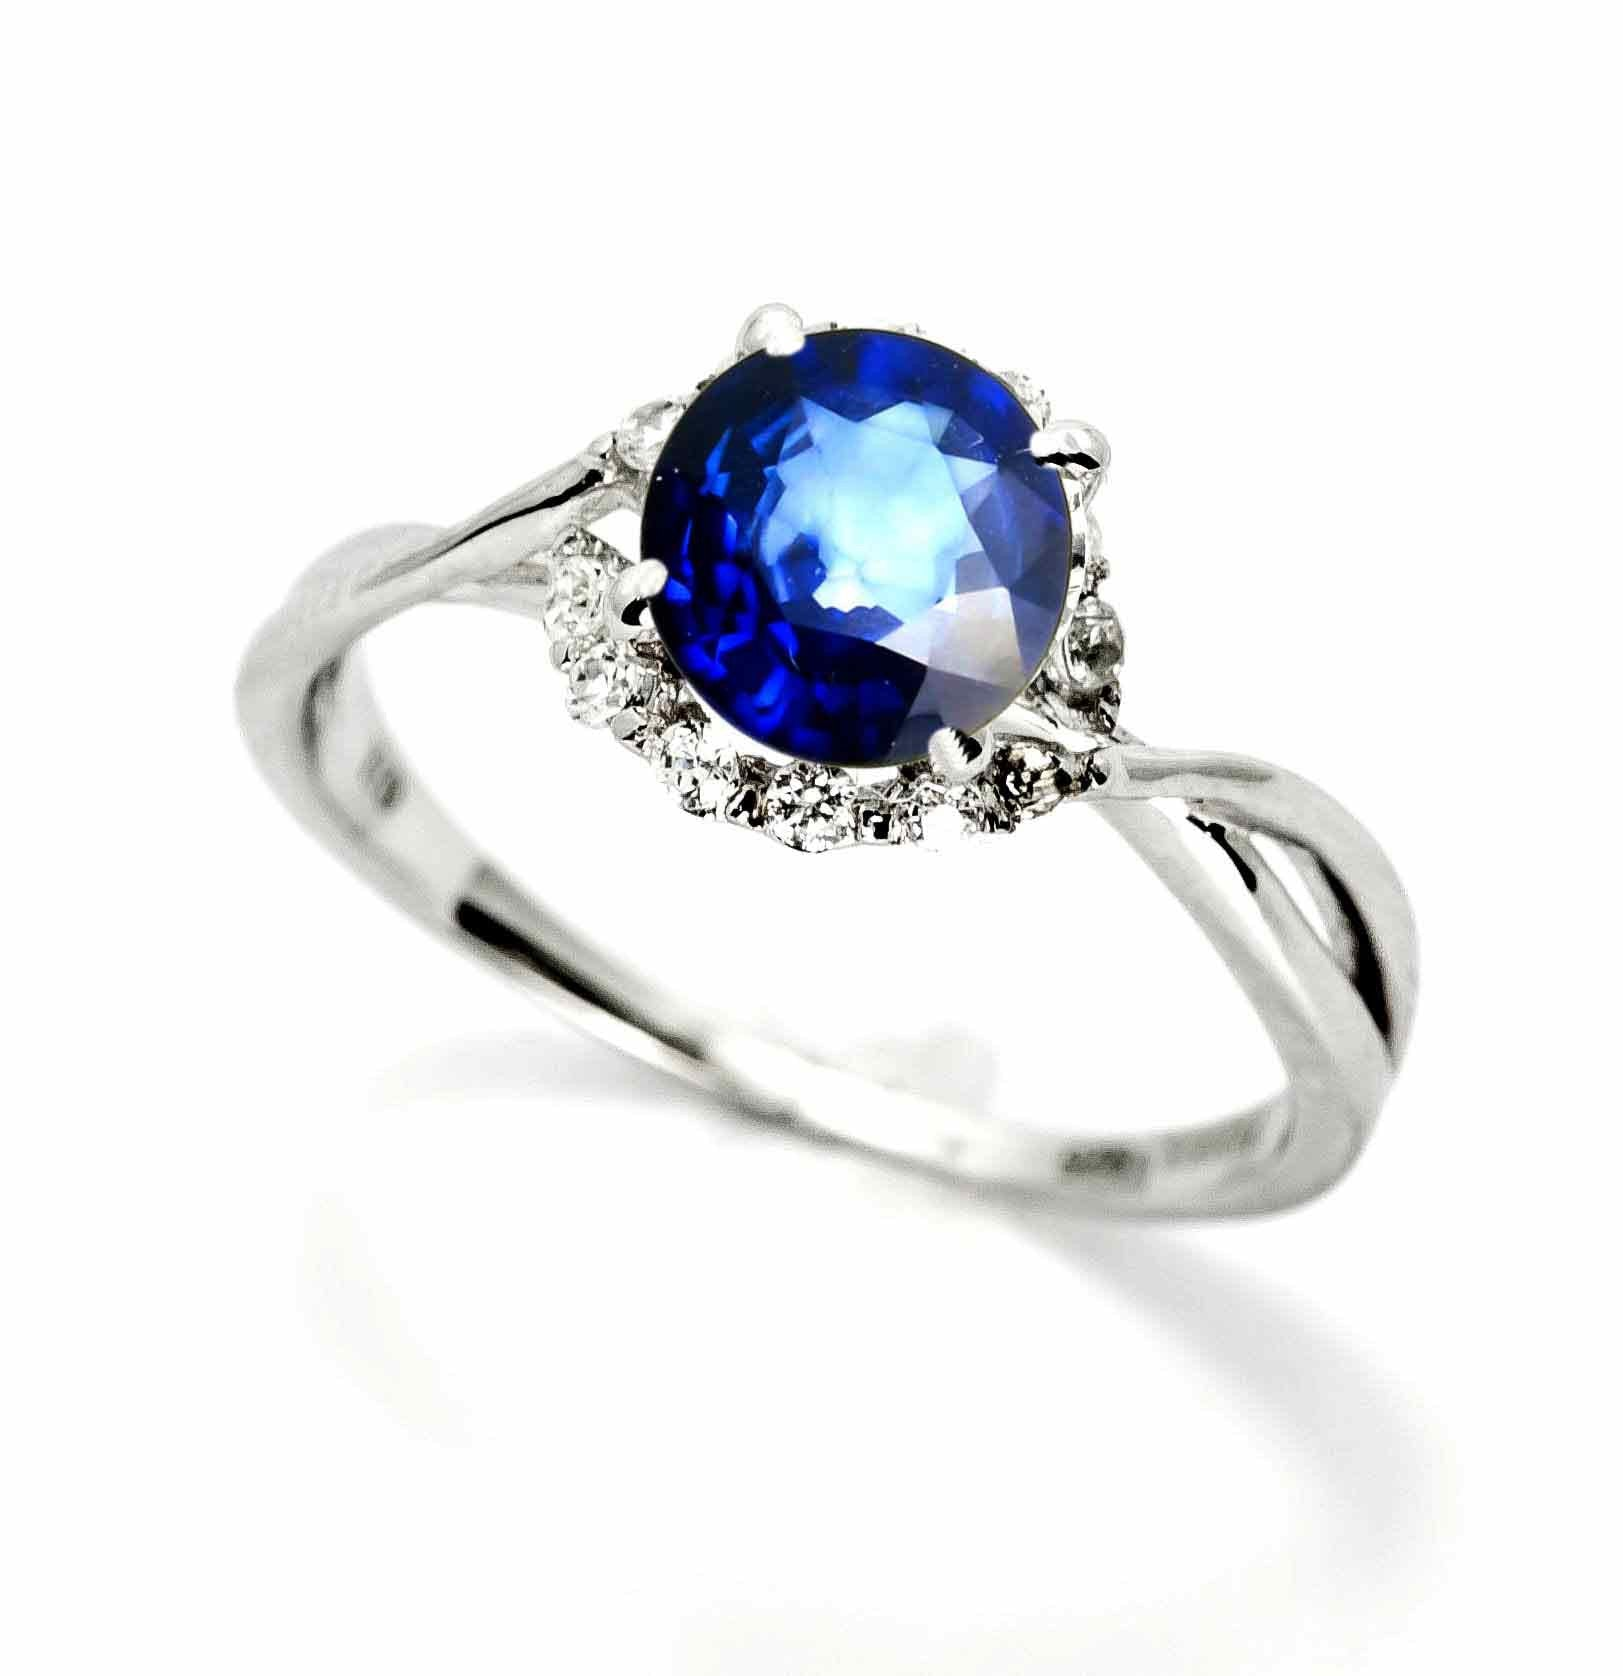 Blue Sapphire Gemstone Engagement Ring, Unique Halo Design With 1.4 Carat (7 mm) Blue Sapphire & .17 Carat Diamonds, Anniversary Ring - SPY11657